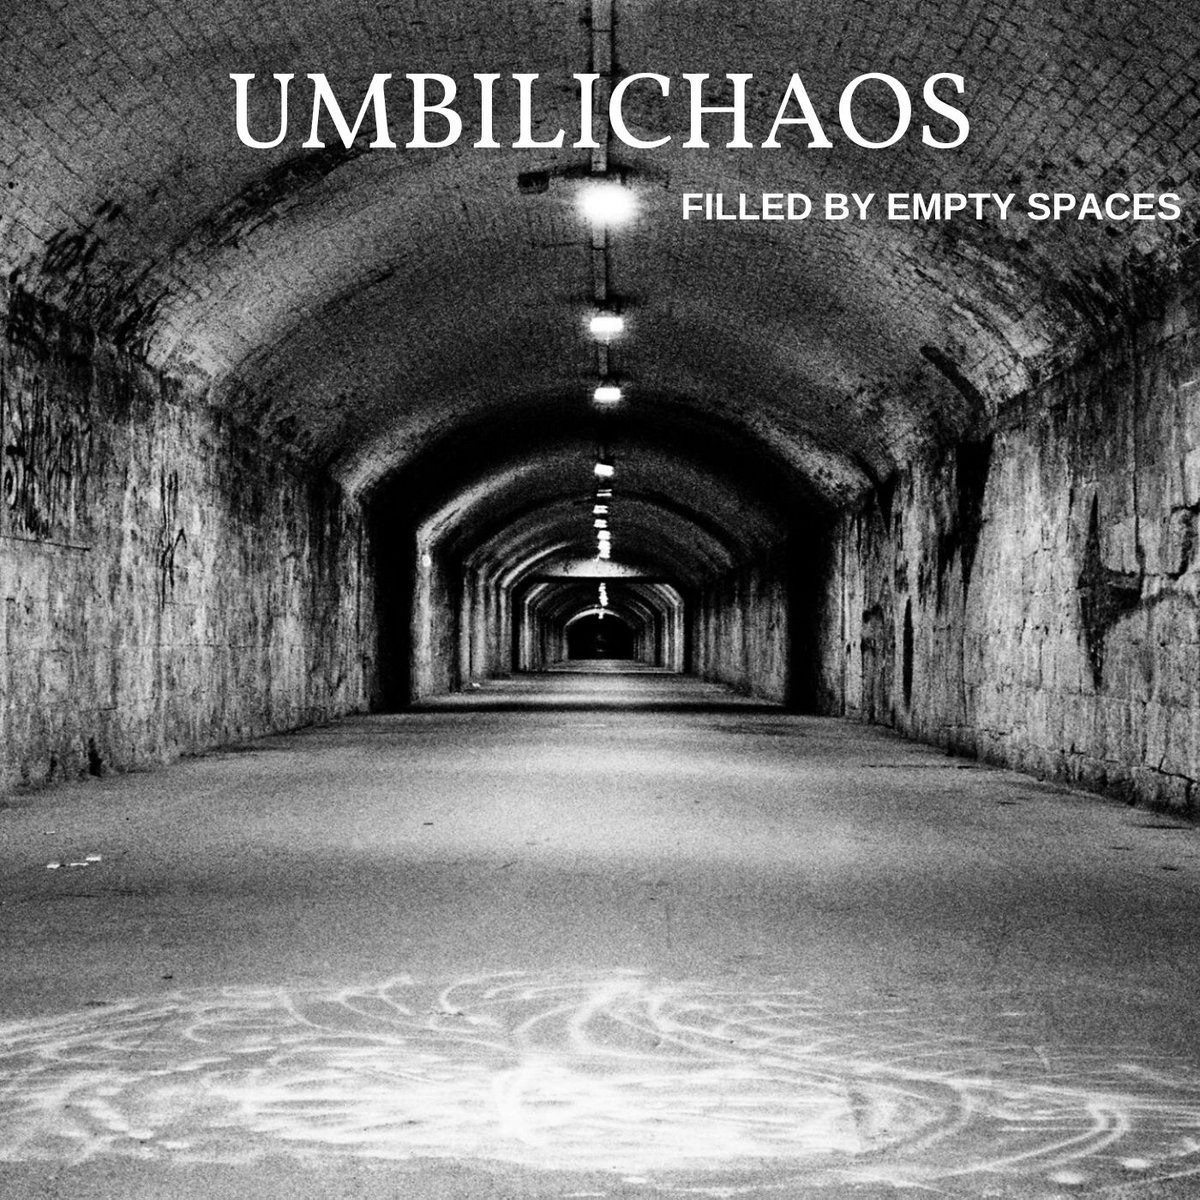 Umbilichaos Filled by Empty Spaces